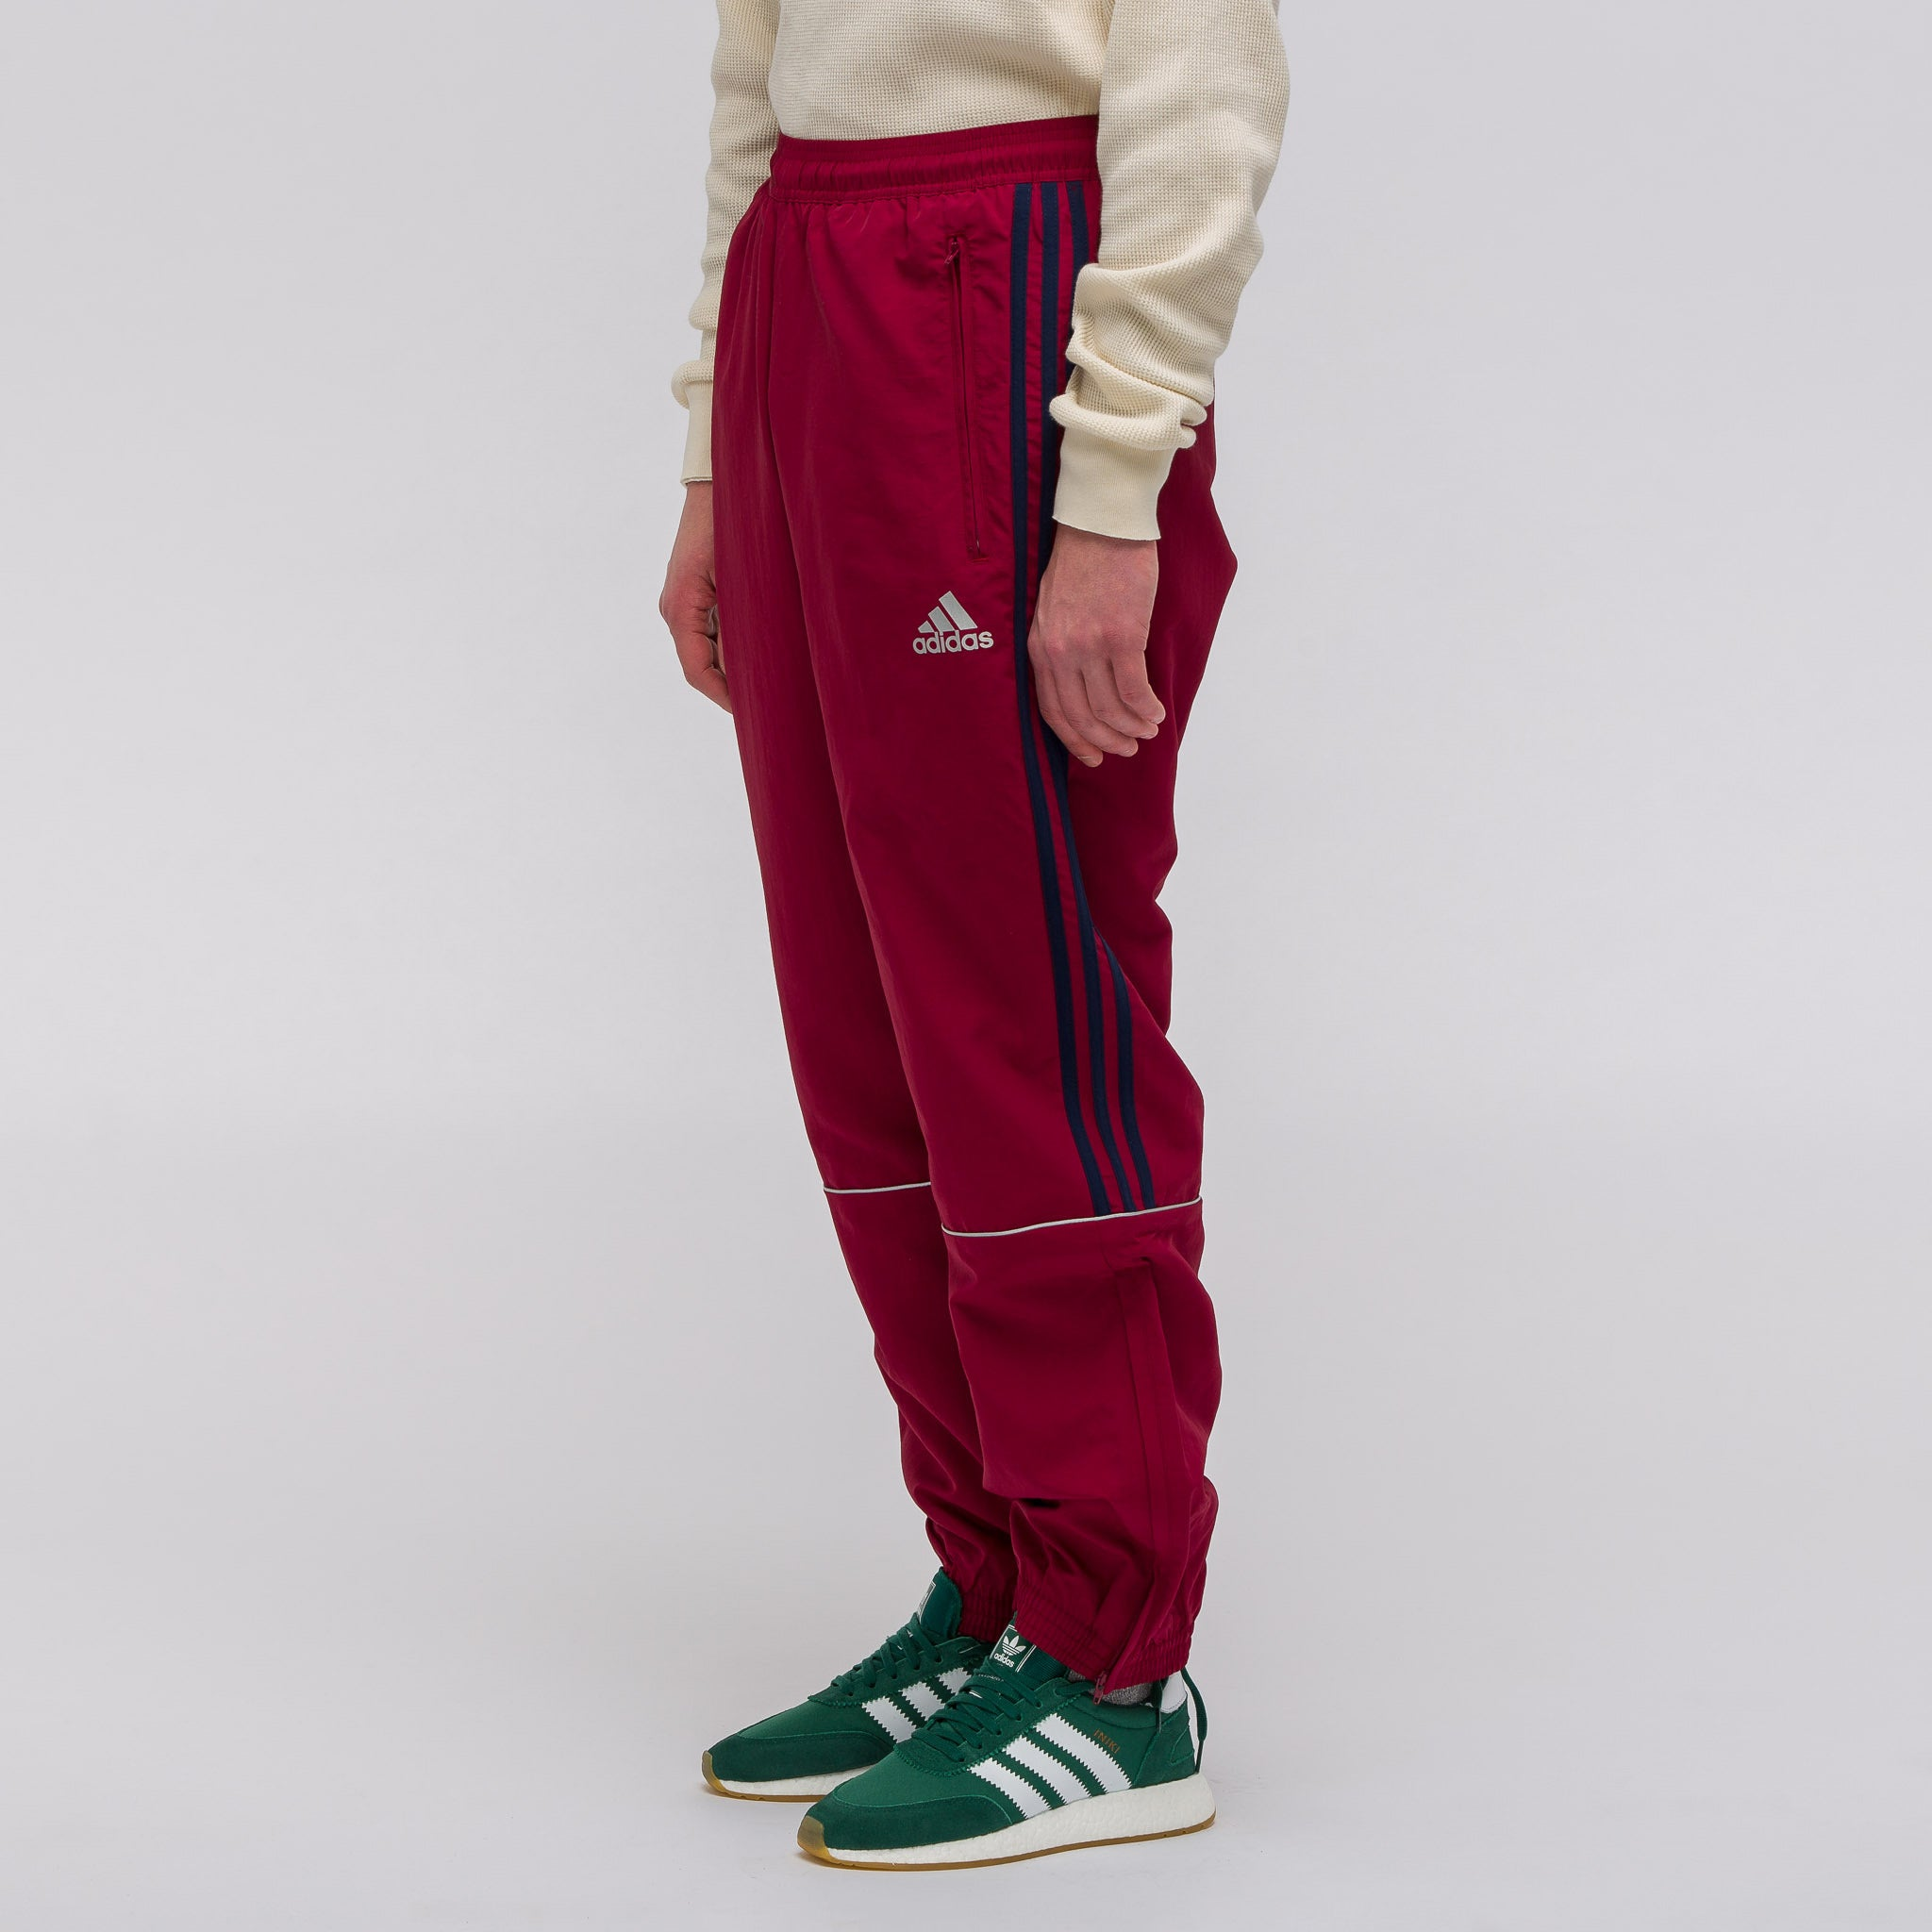 x Adidas Track Pant in Burgundy